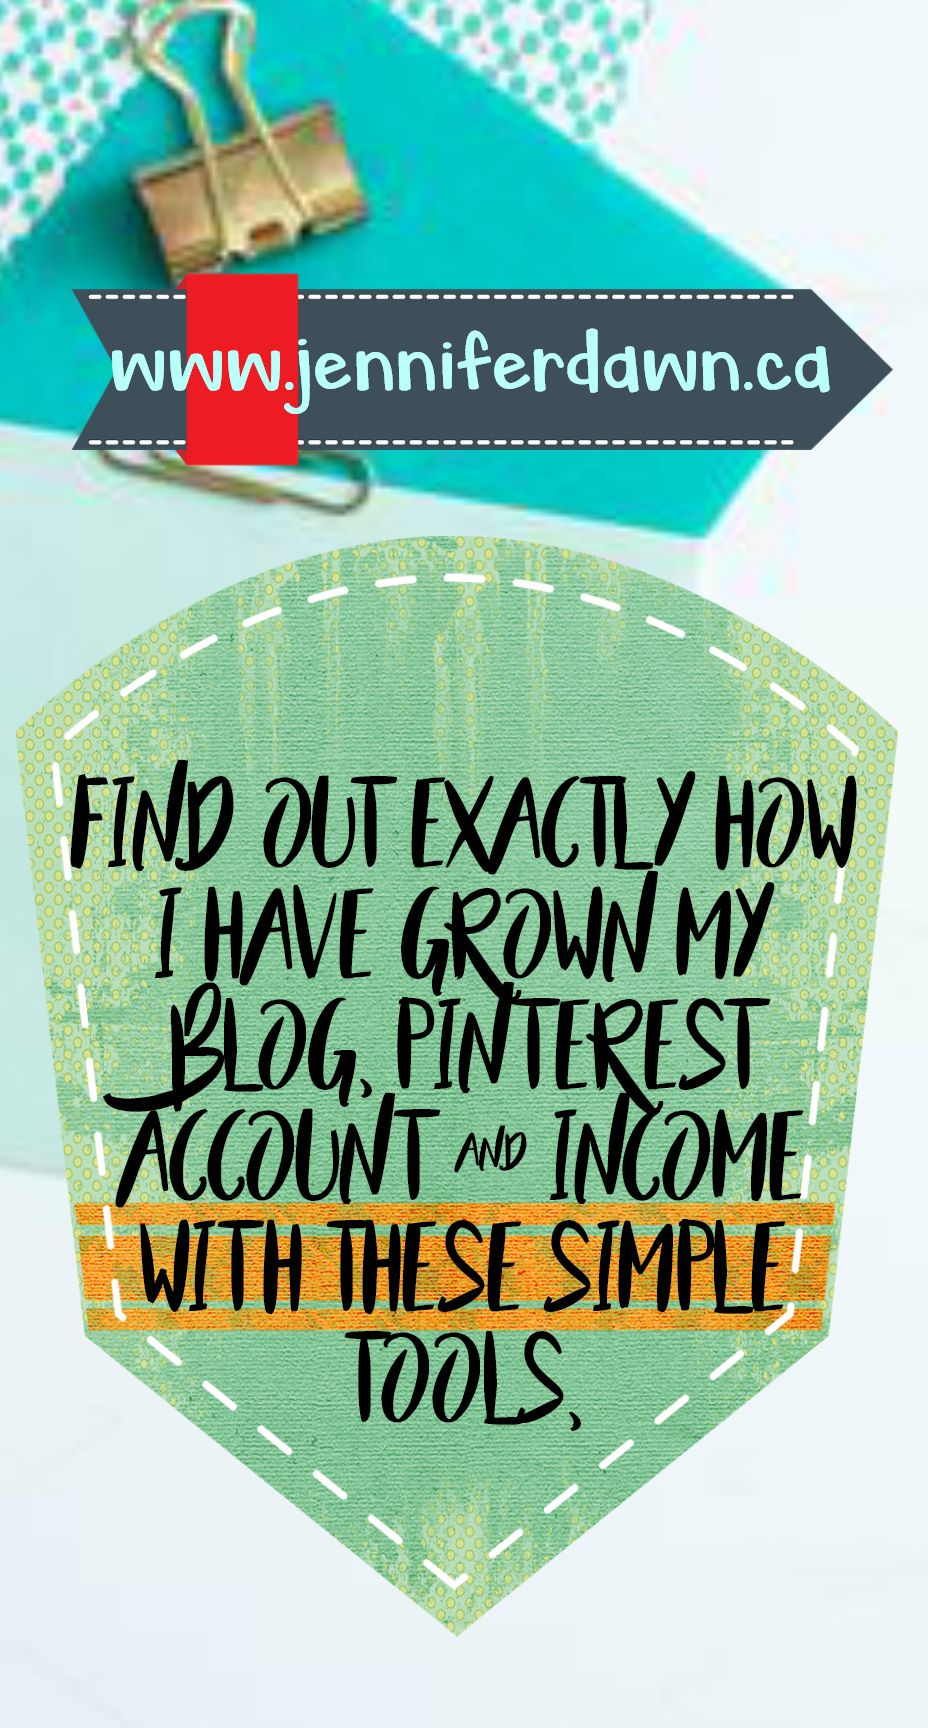 7937891793b5 Find out what tools I have used to grow my Pinterest account over 400k  views per